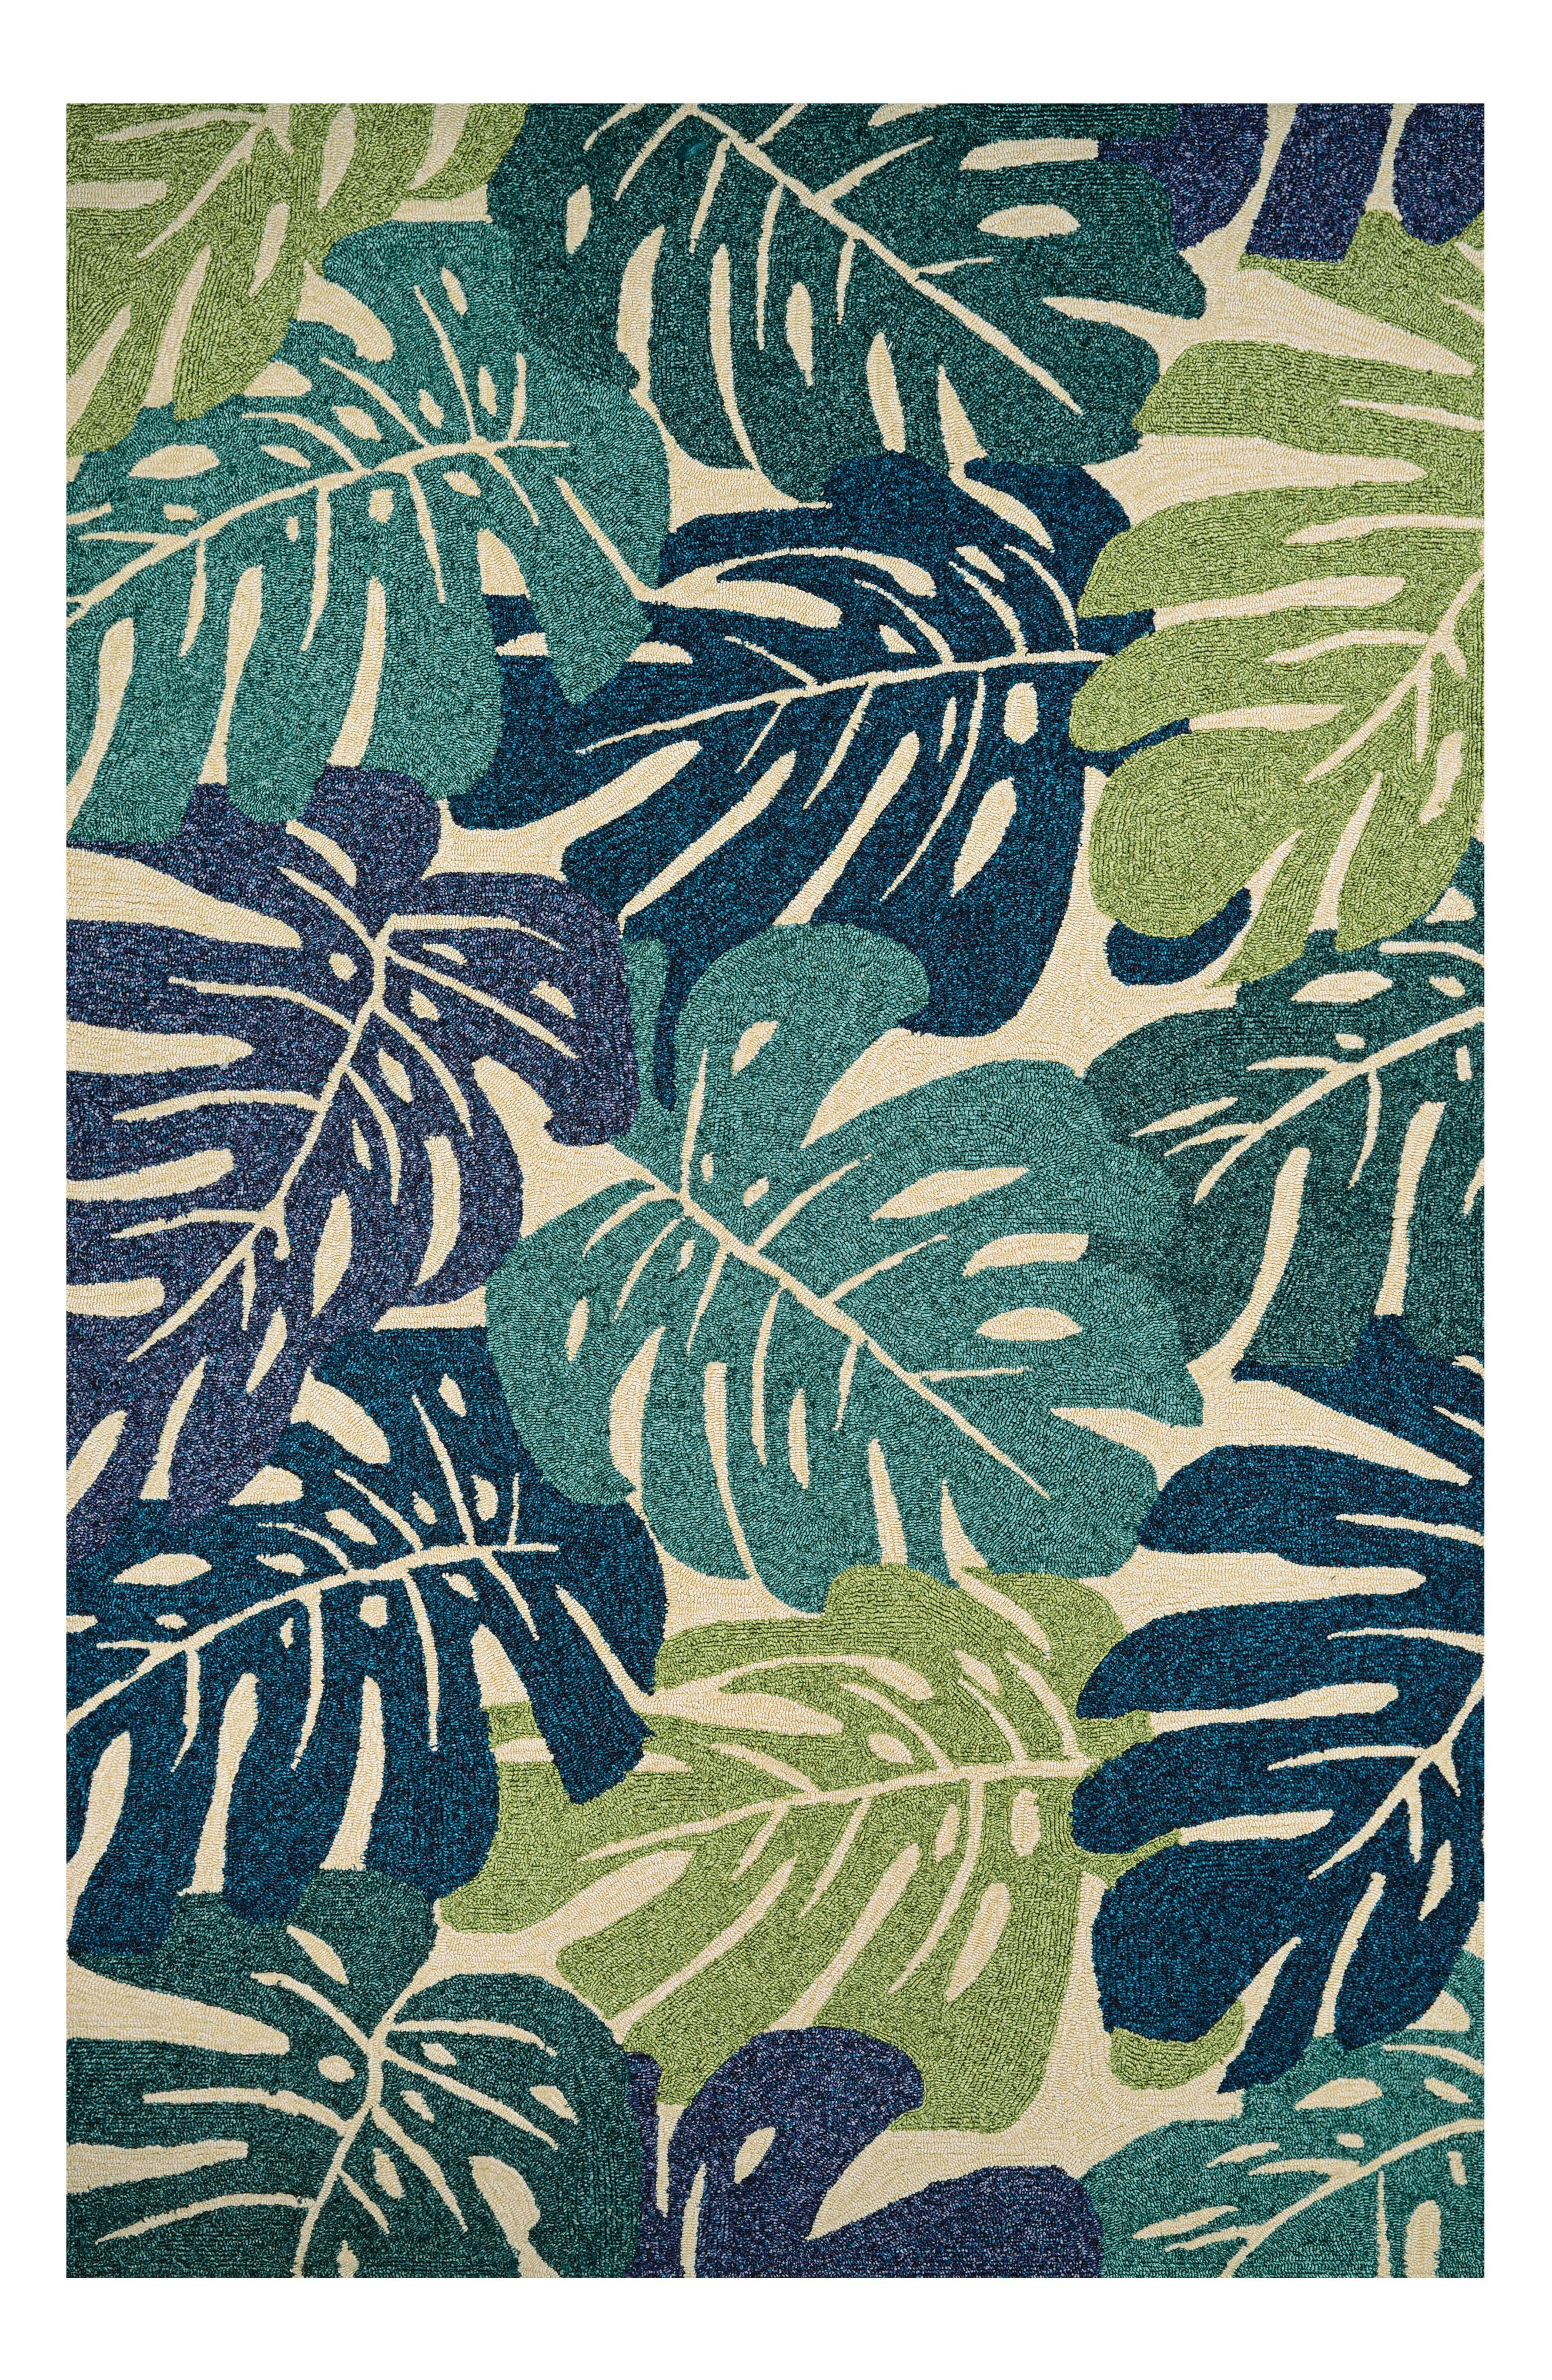 Monstera Indoor/Outdoor Rug,                             Main thumbnail 1, color,                             300